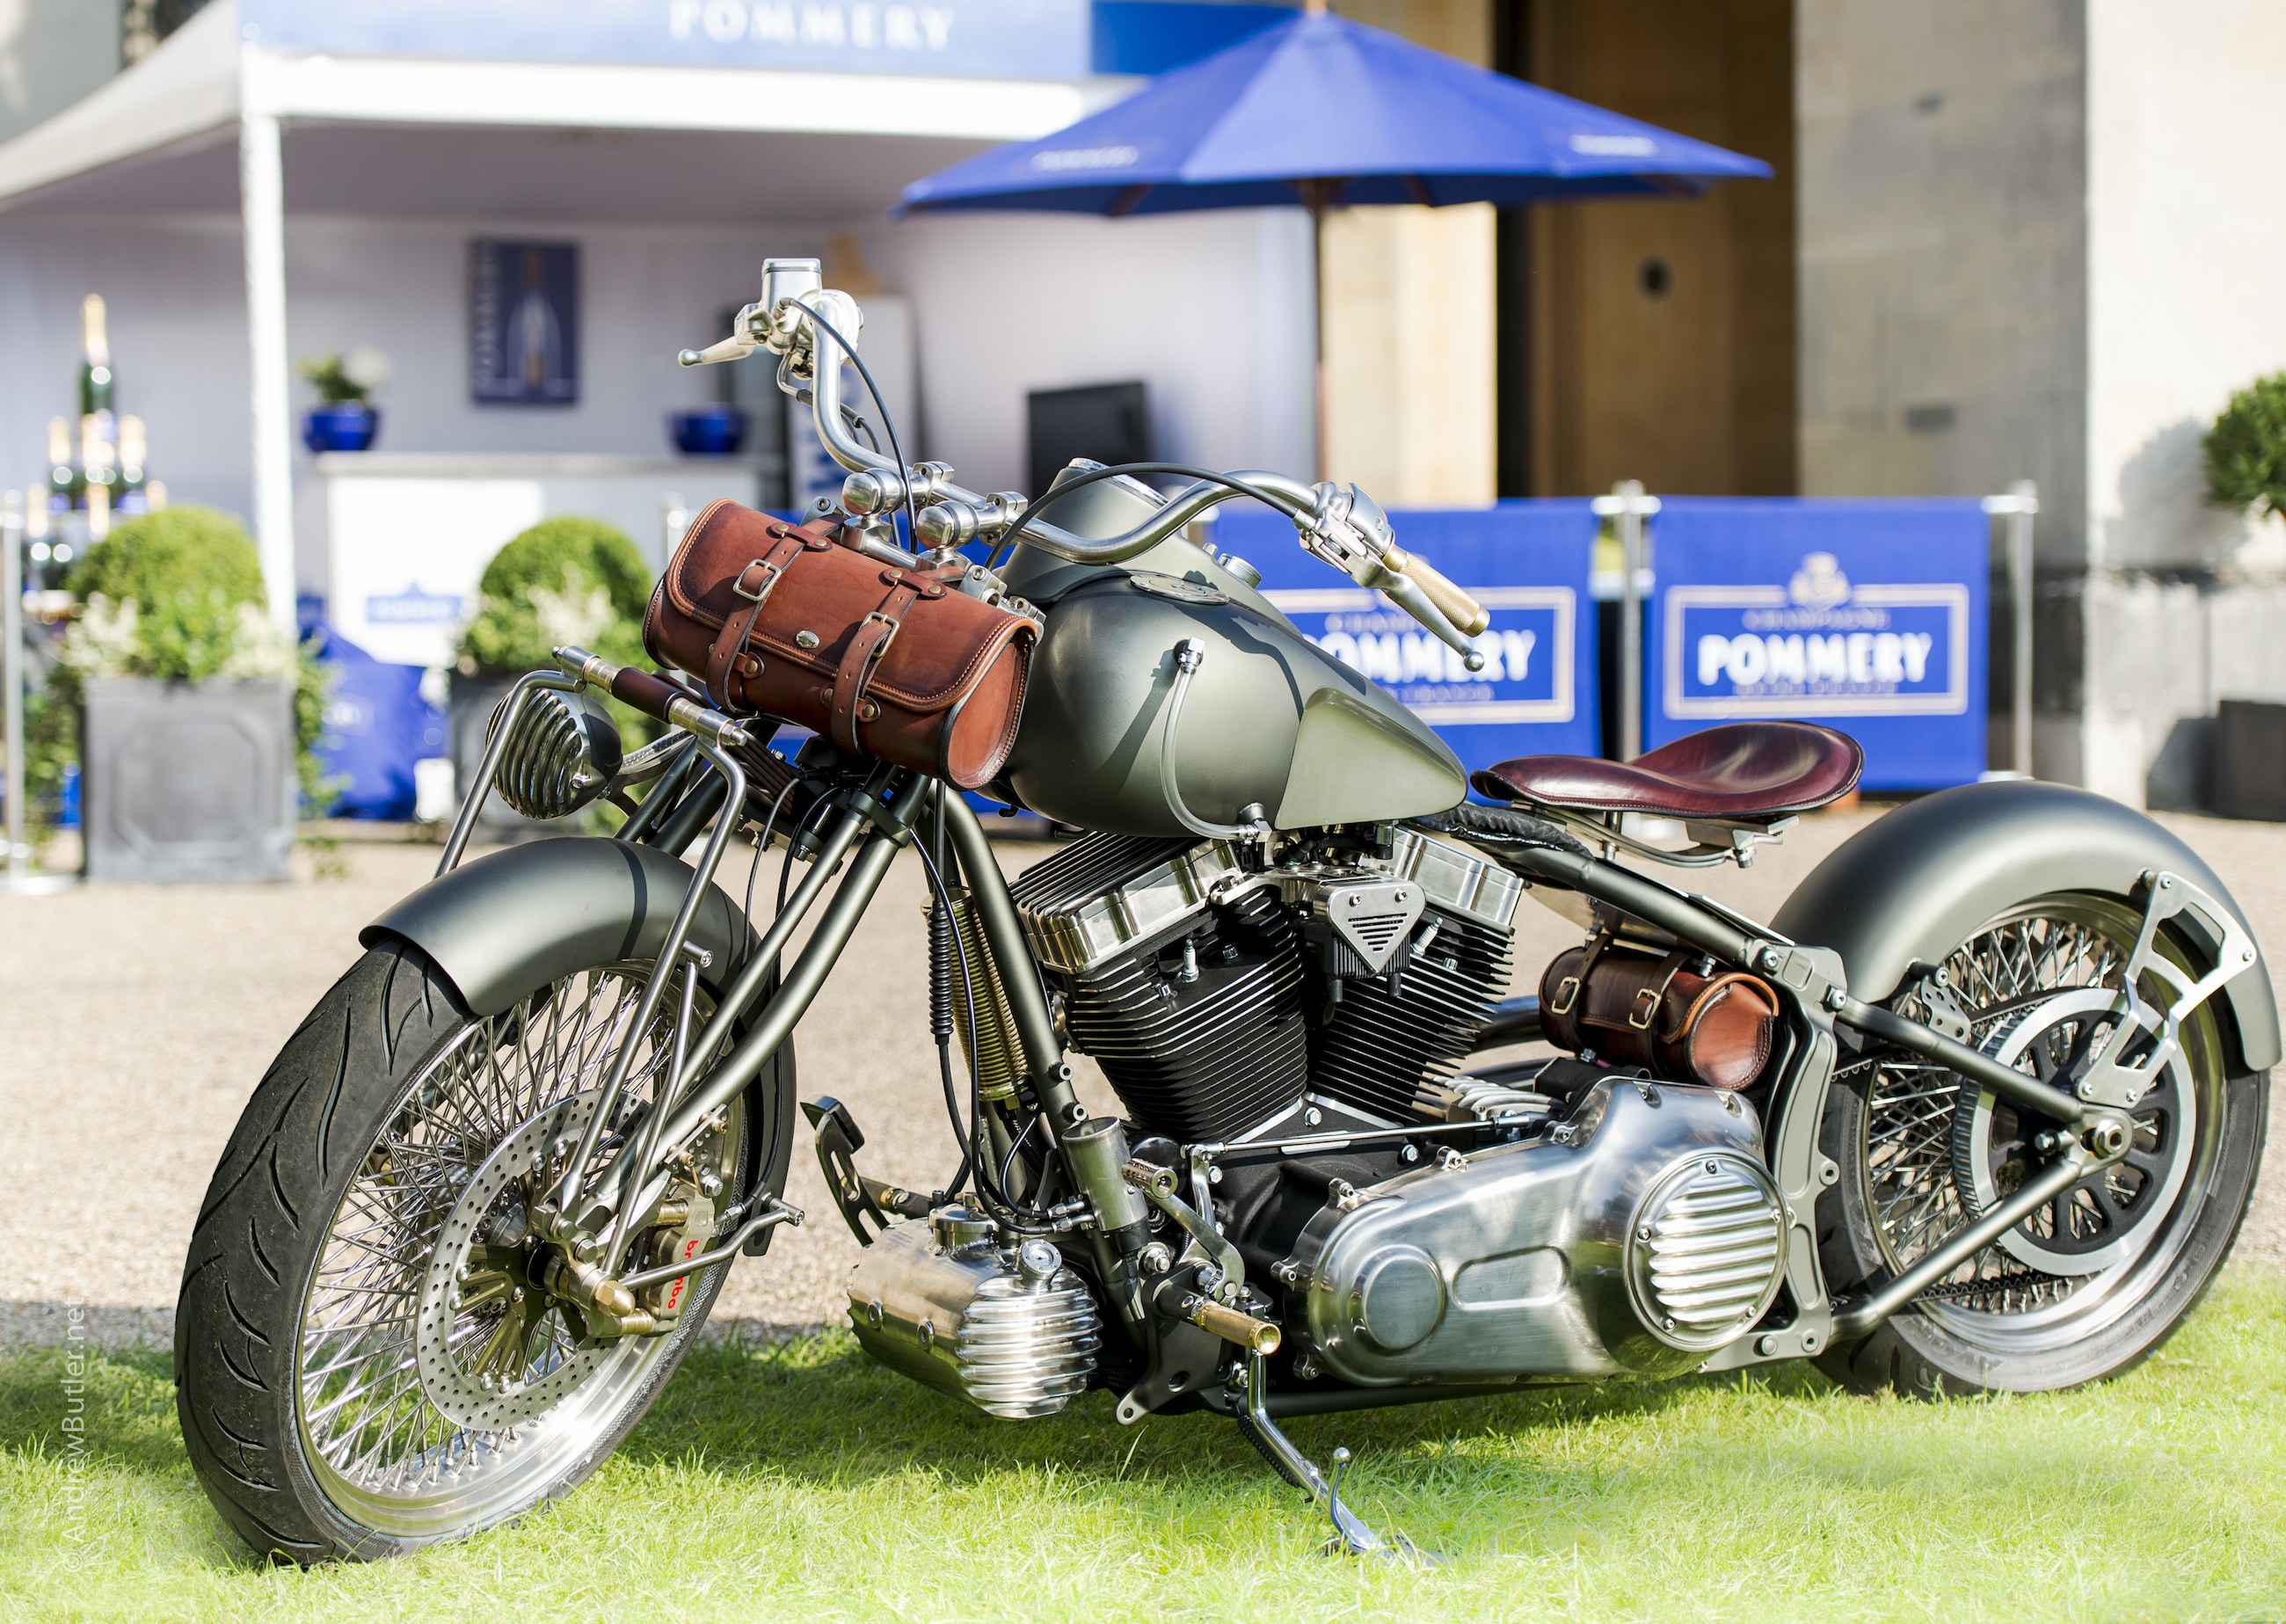 Salon Prive 2014 Warrs Harley by motorbike photographer Photograph by Motoring Photographer Andrew Butler of Exeter Devon